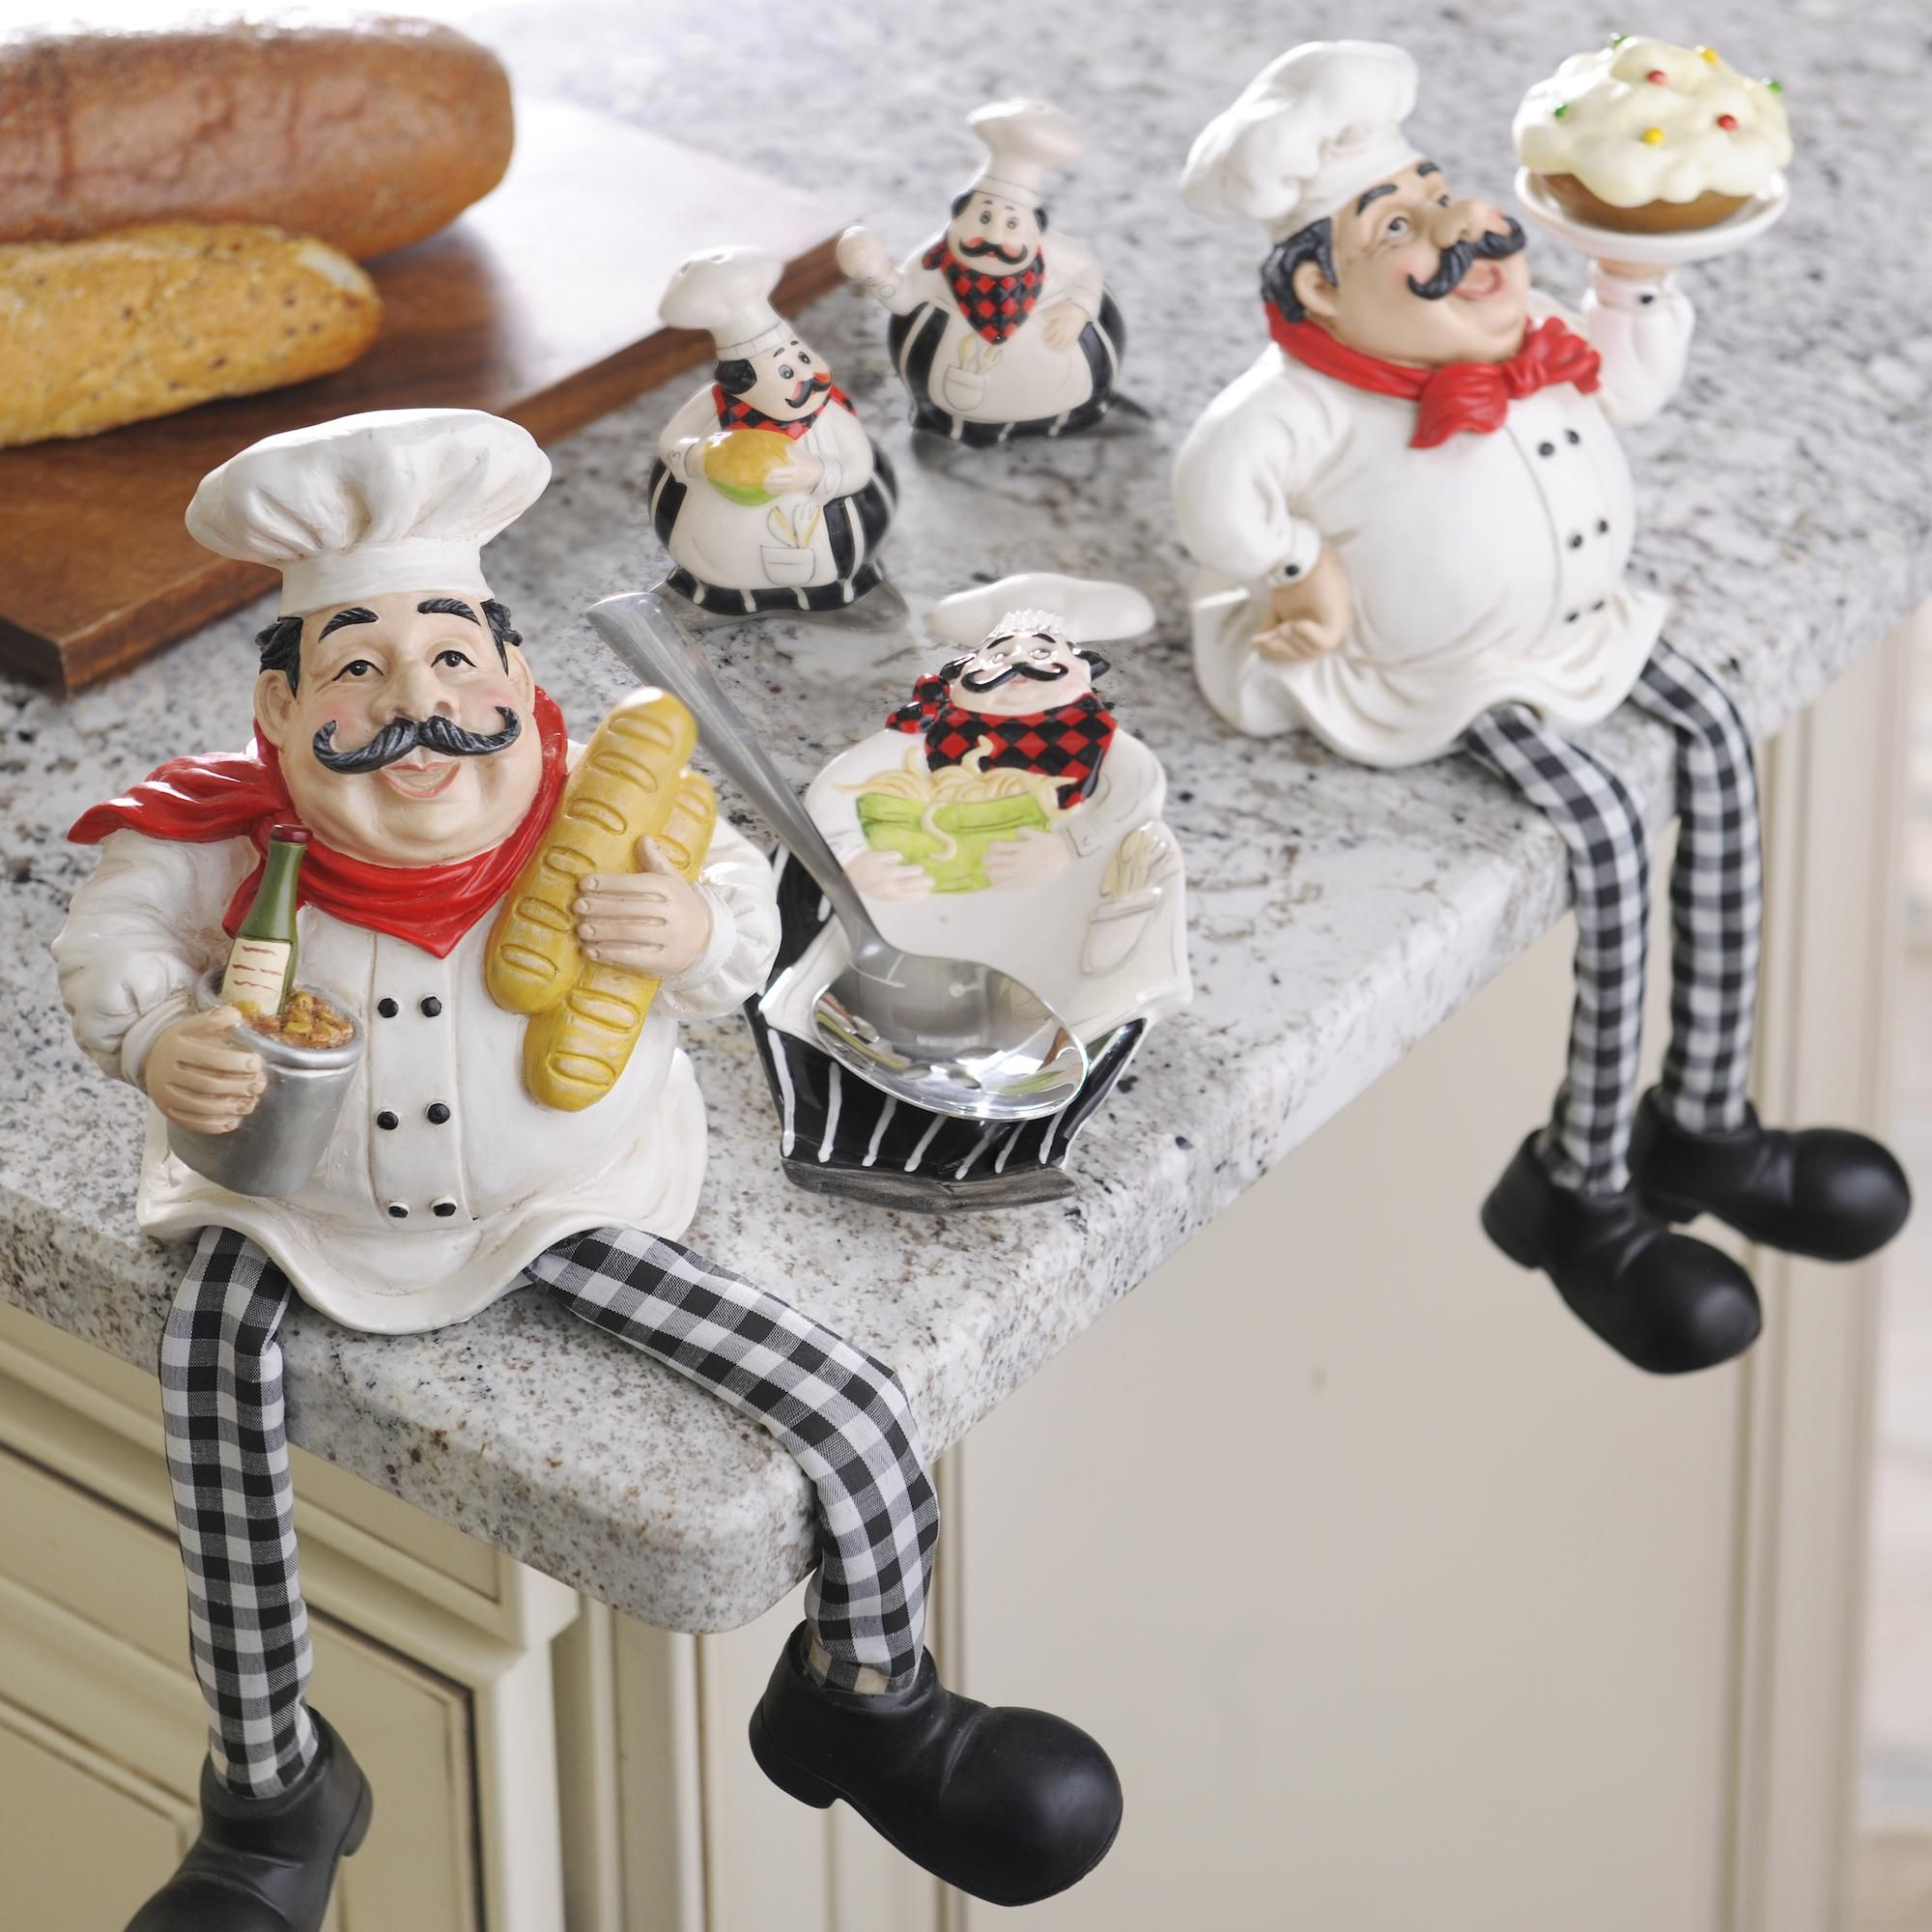 Fat Chef Kitchen Accessories: Pin On Kitchens